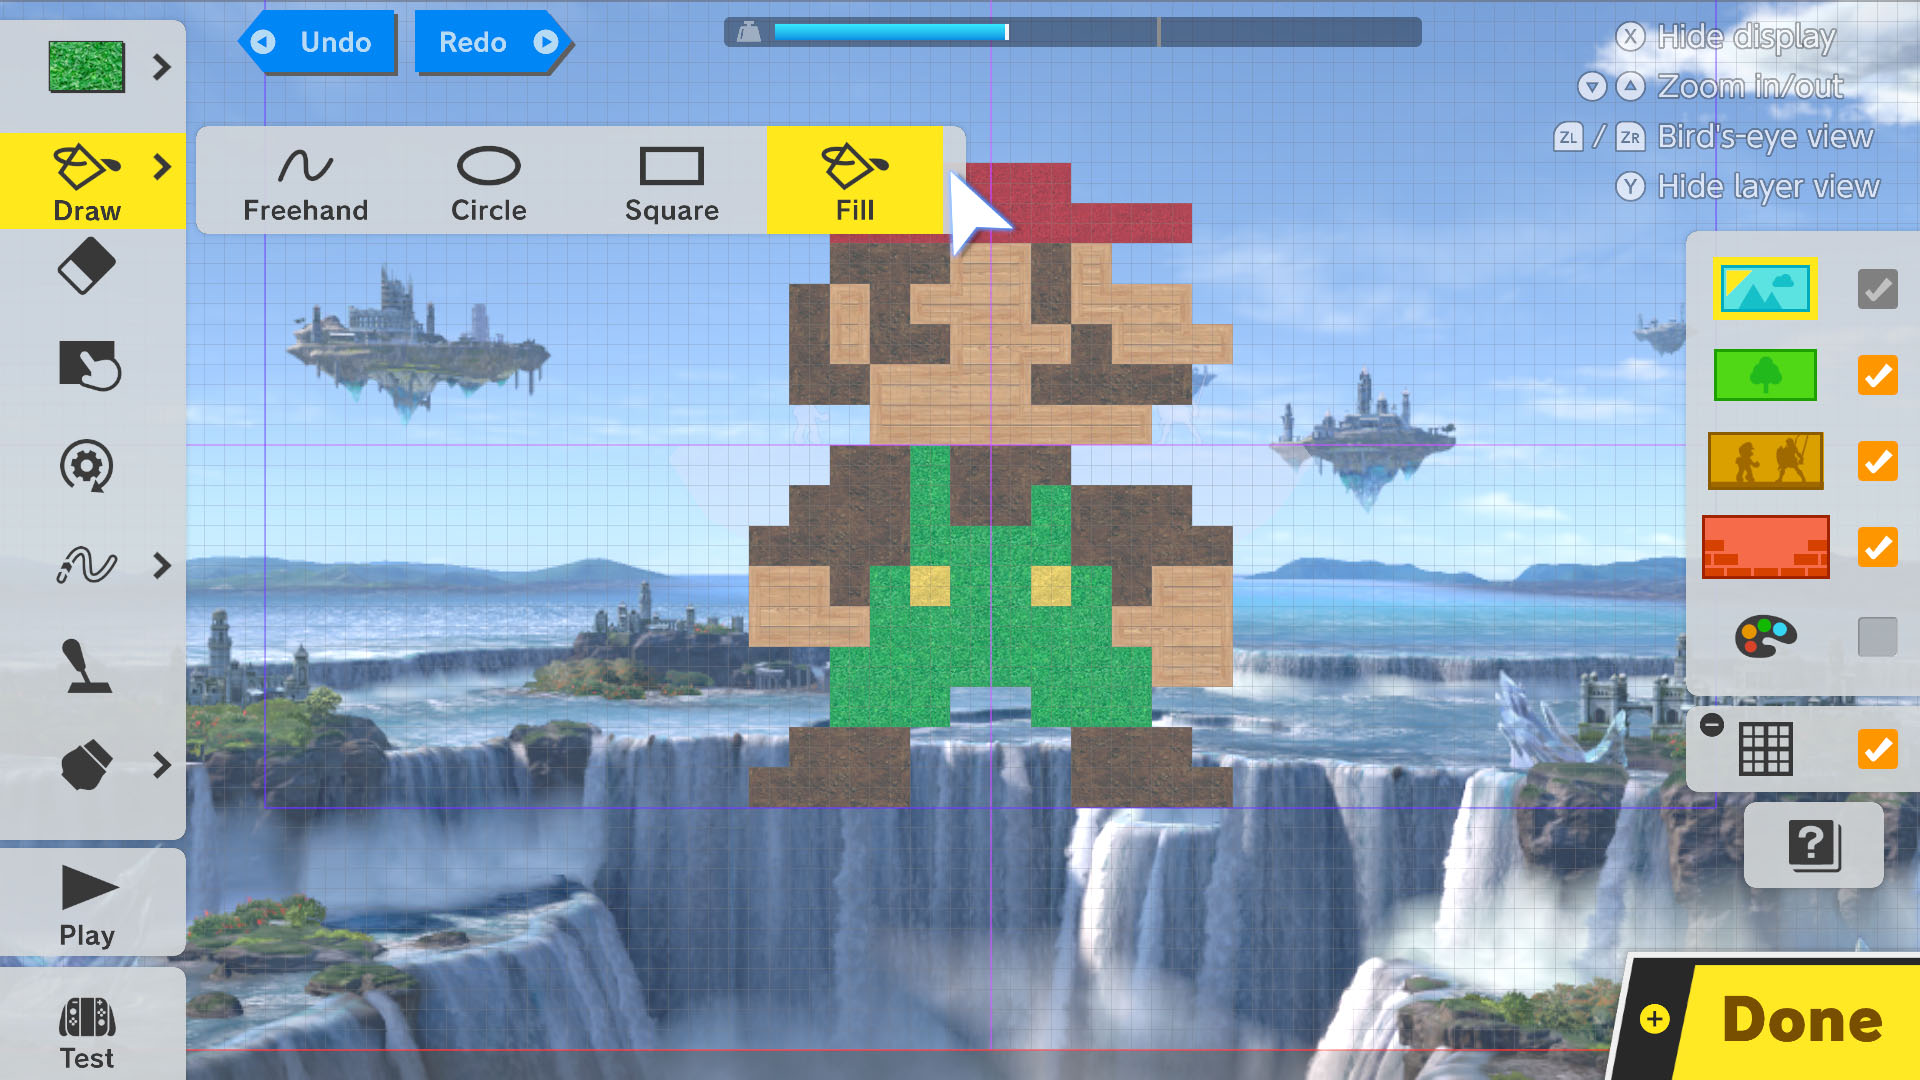 In undocked mode, you can use the Switch's touchscreen to draw your stage